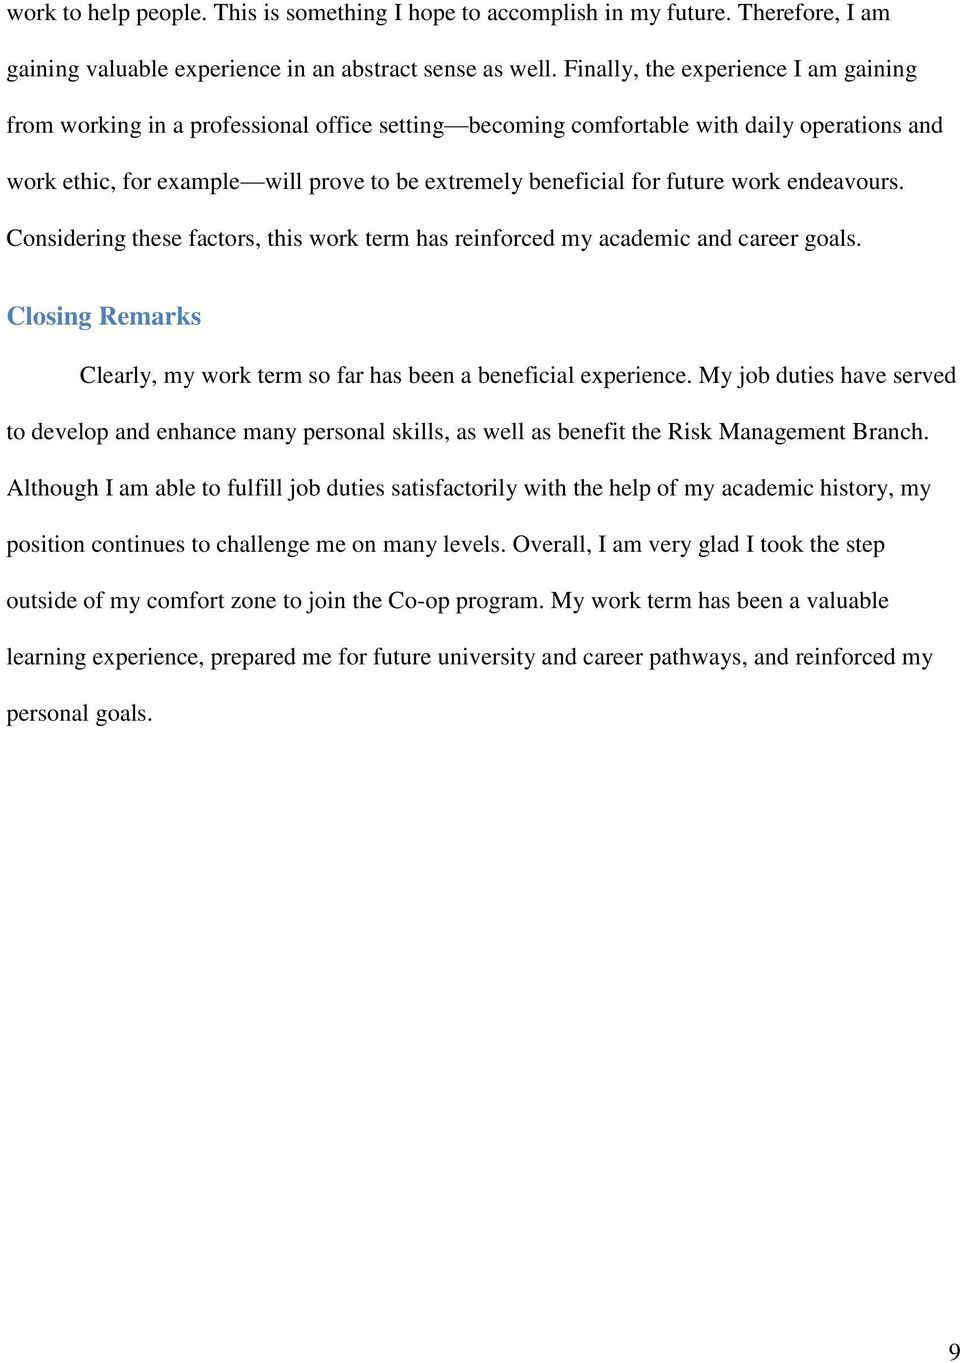 future work endeavours. Considering these factors, this work term has reinforced my academic and career goals. Closing Remarks Clearly, my work term so far has been a beneficial experience.